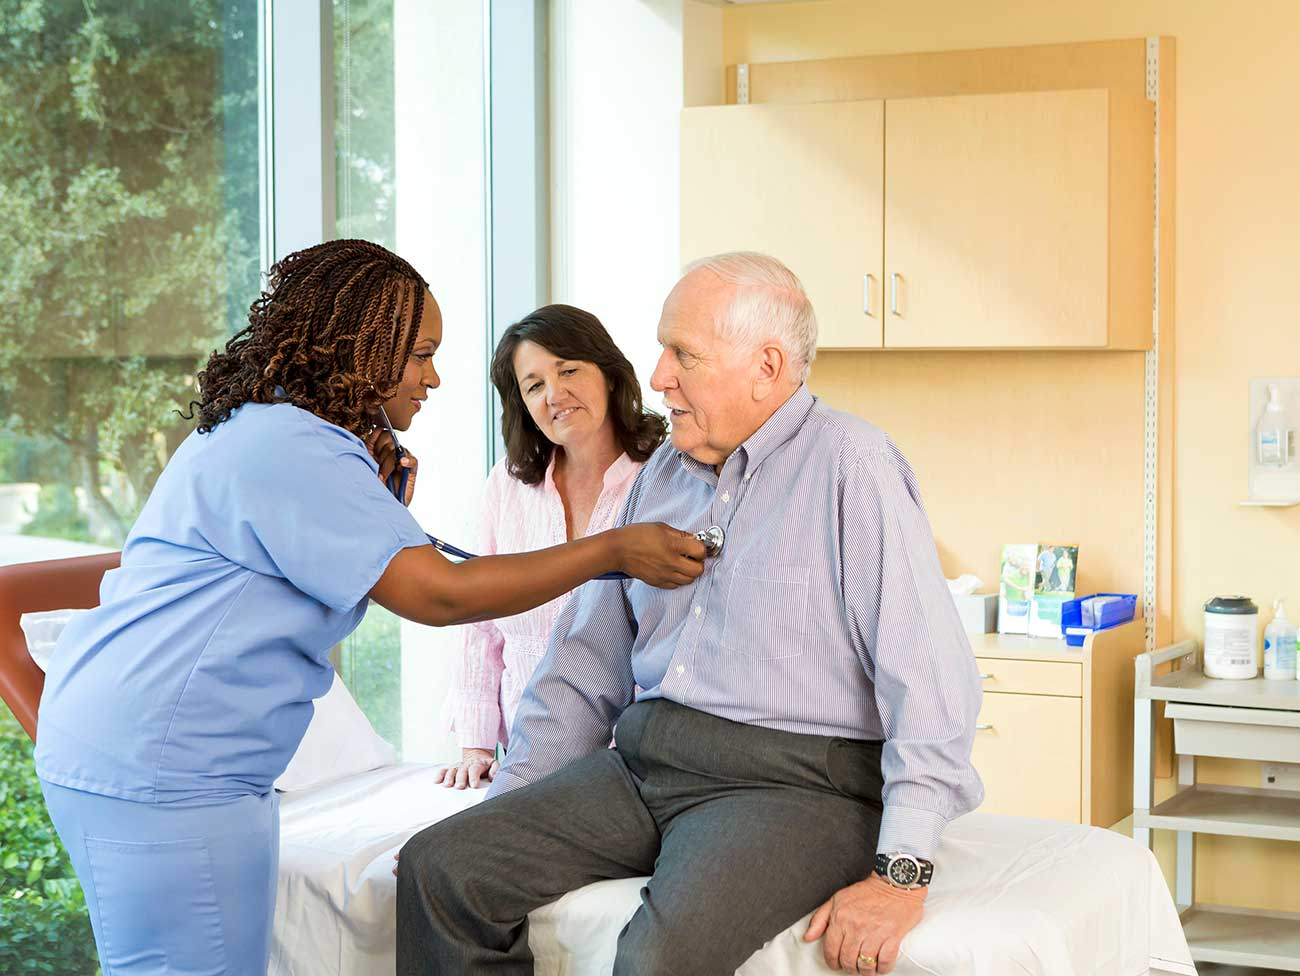 woman medical care worker listening to the heartbeat of an elderly man